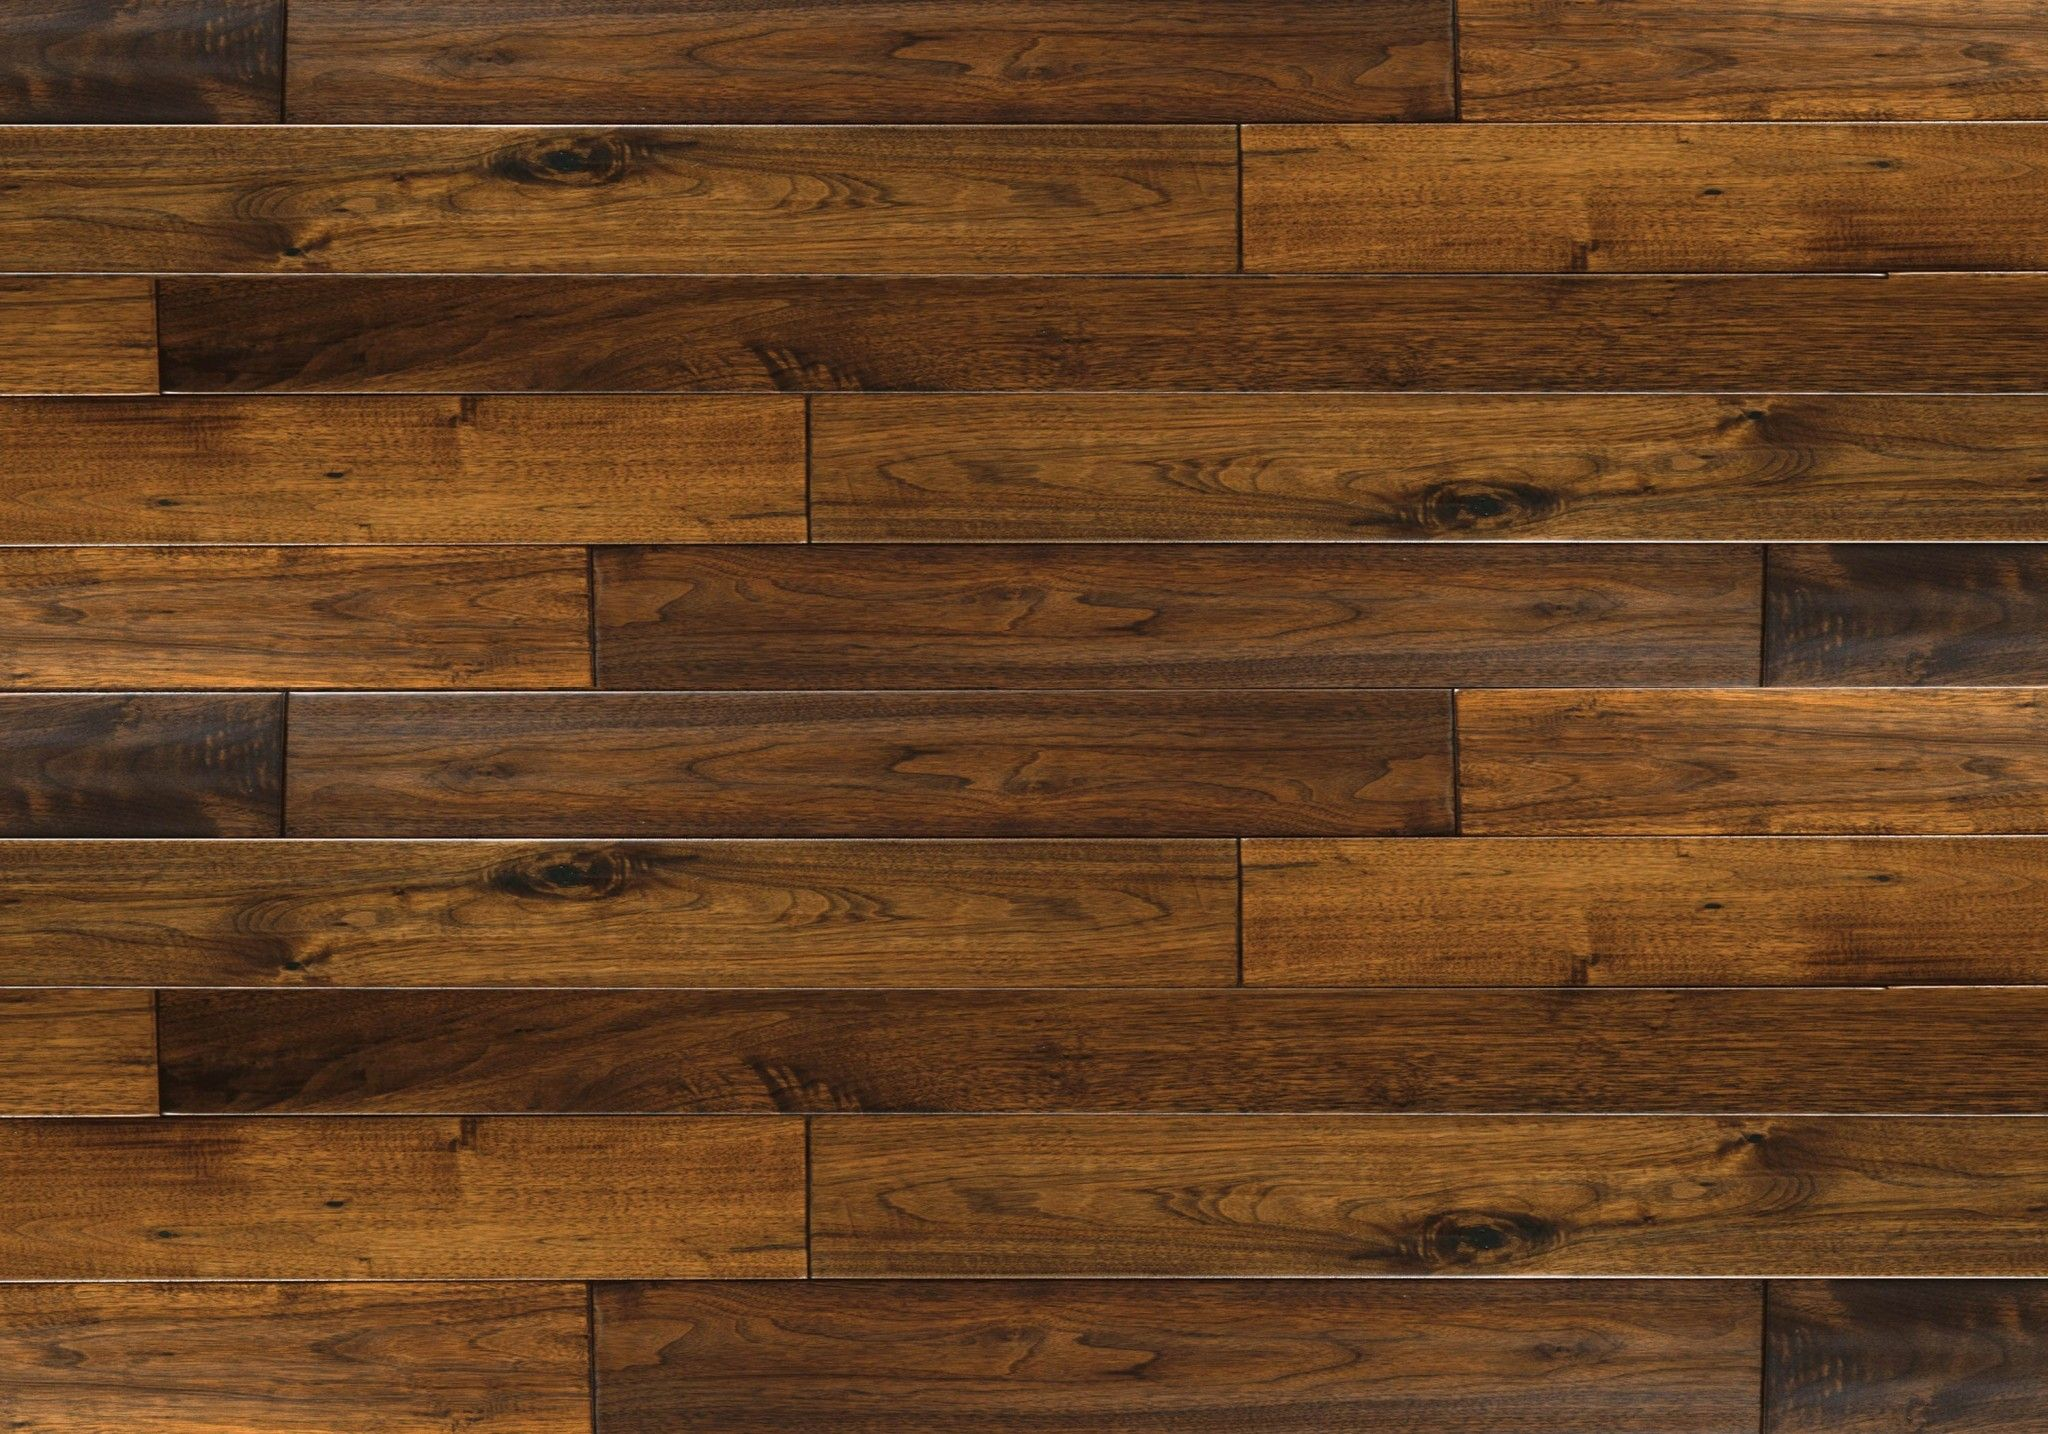 Discover Lauzon S Hardwood Flooring With Our Tobacco Brown This